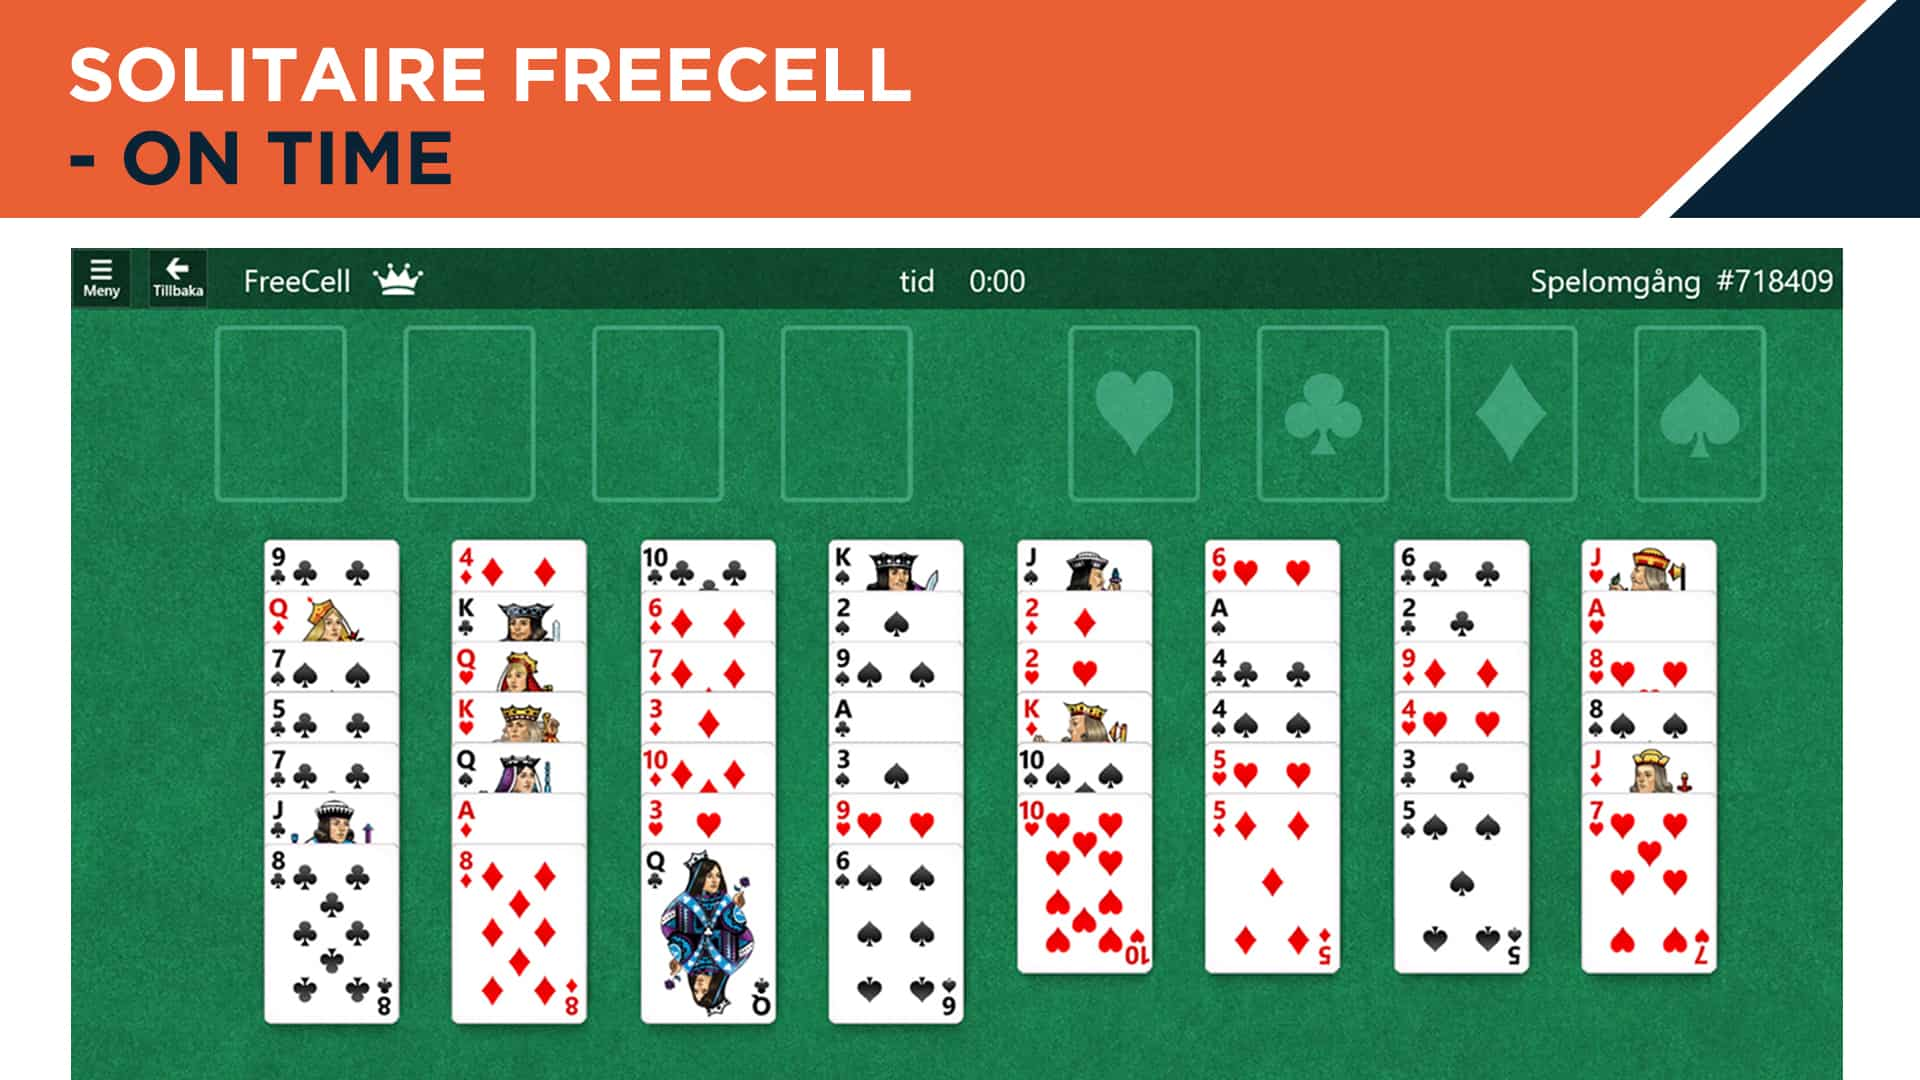 Solitaire Freecell - on time